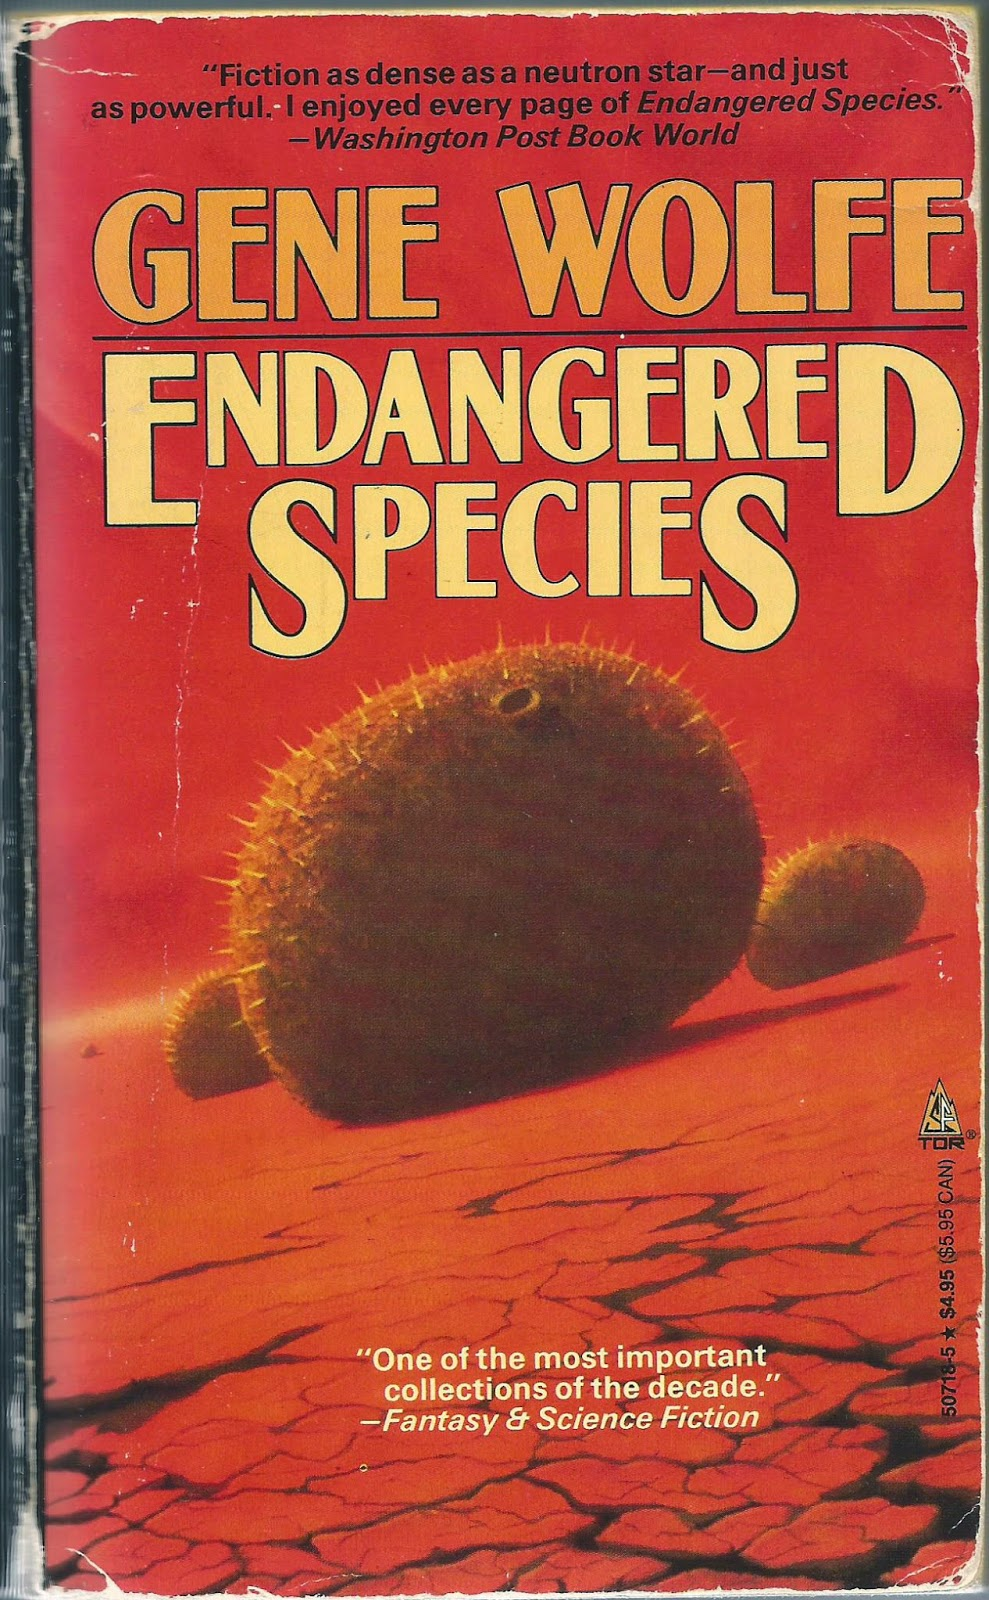 Endangered Species (1989) - Described by R.A. Lafferty as the best single author collection of the '80s, Endangered Species displays Wolfe and his Borgesian best. Featuring a generous selection of over 30 stories published throughout Wolfe's career before the '90s, the reader will find the author has mastered an alarming breadth of genres & subjects. Space opera & pulp thriller, fantasy & myth, war & comedy— these only scratch the surface of what Wolfe has to offer.